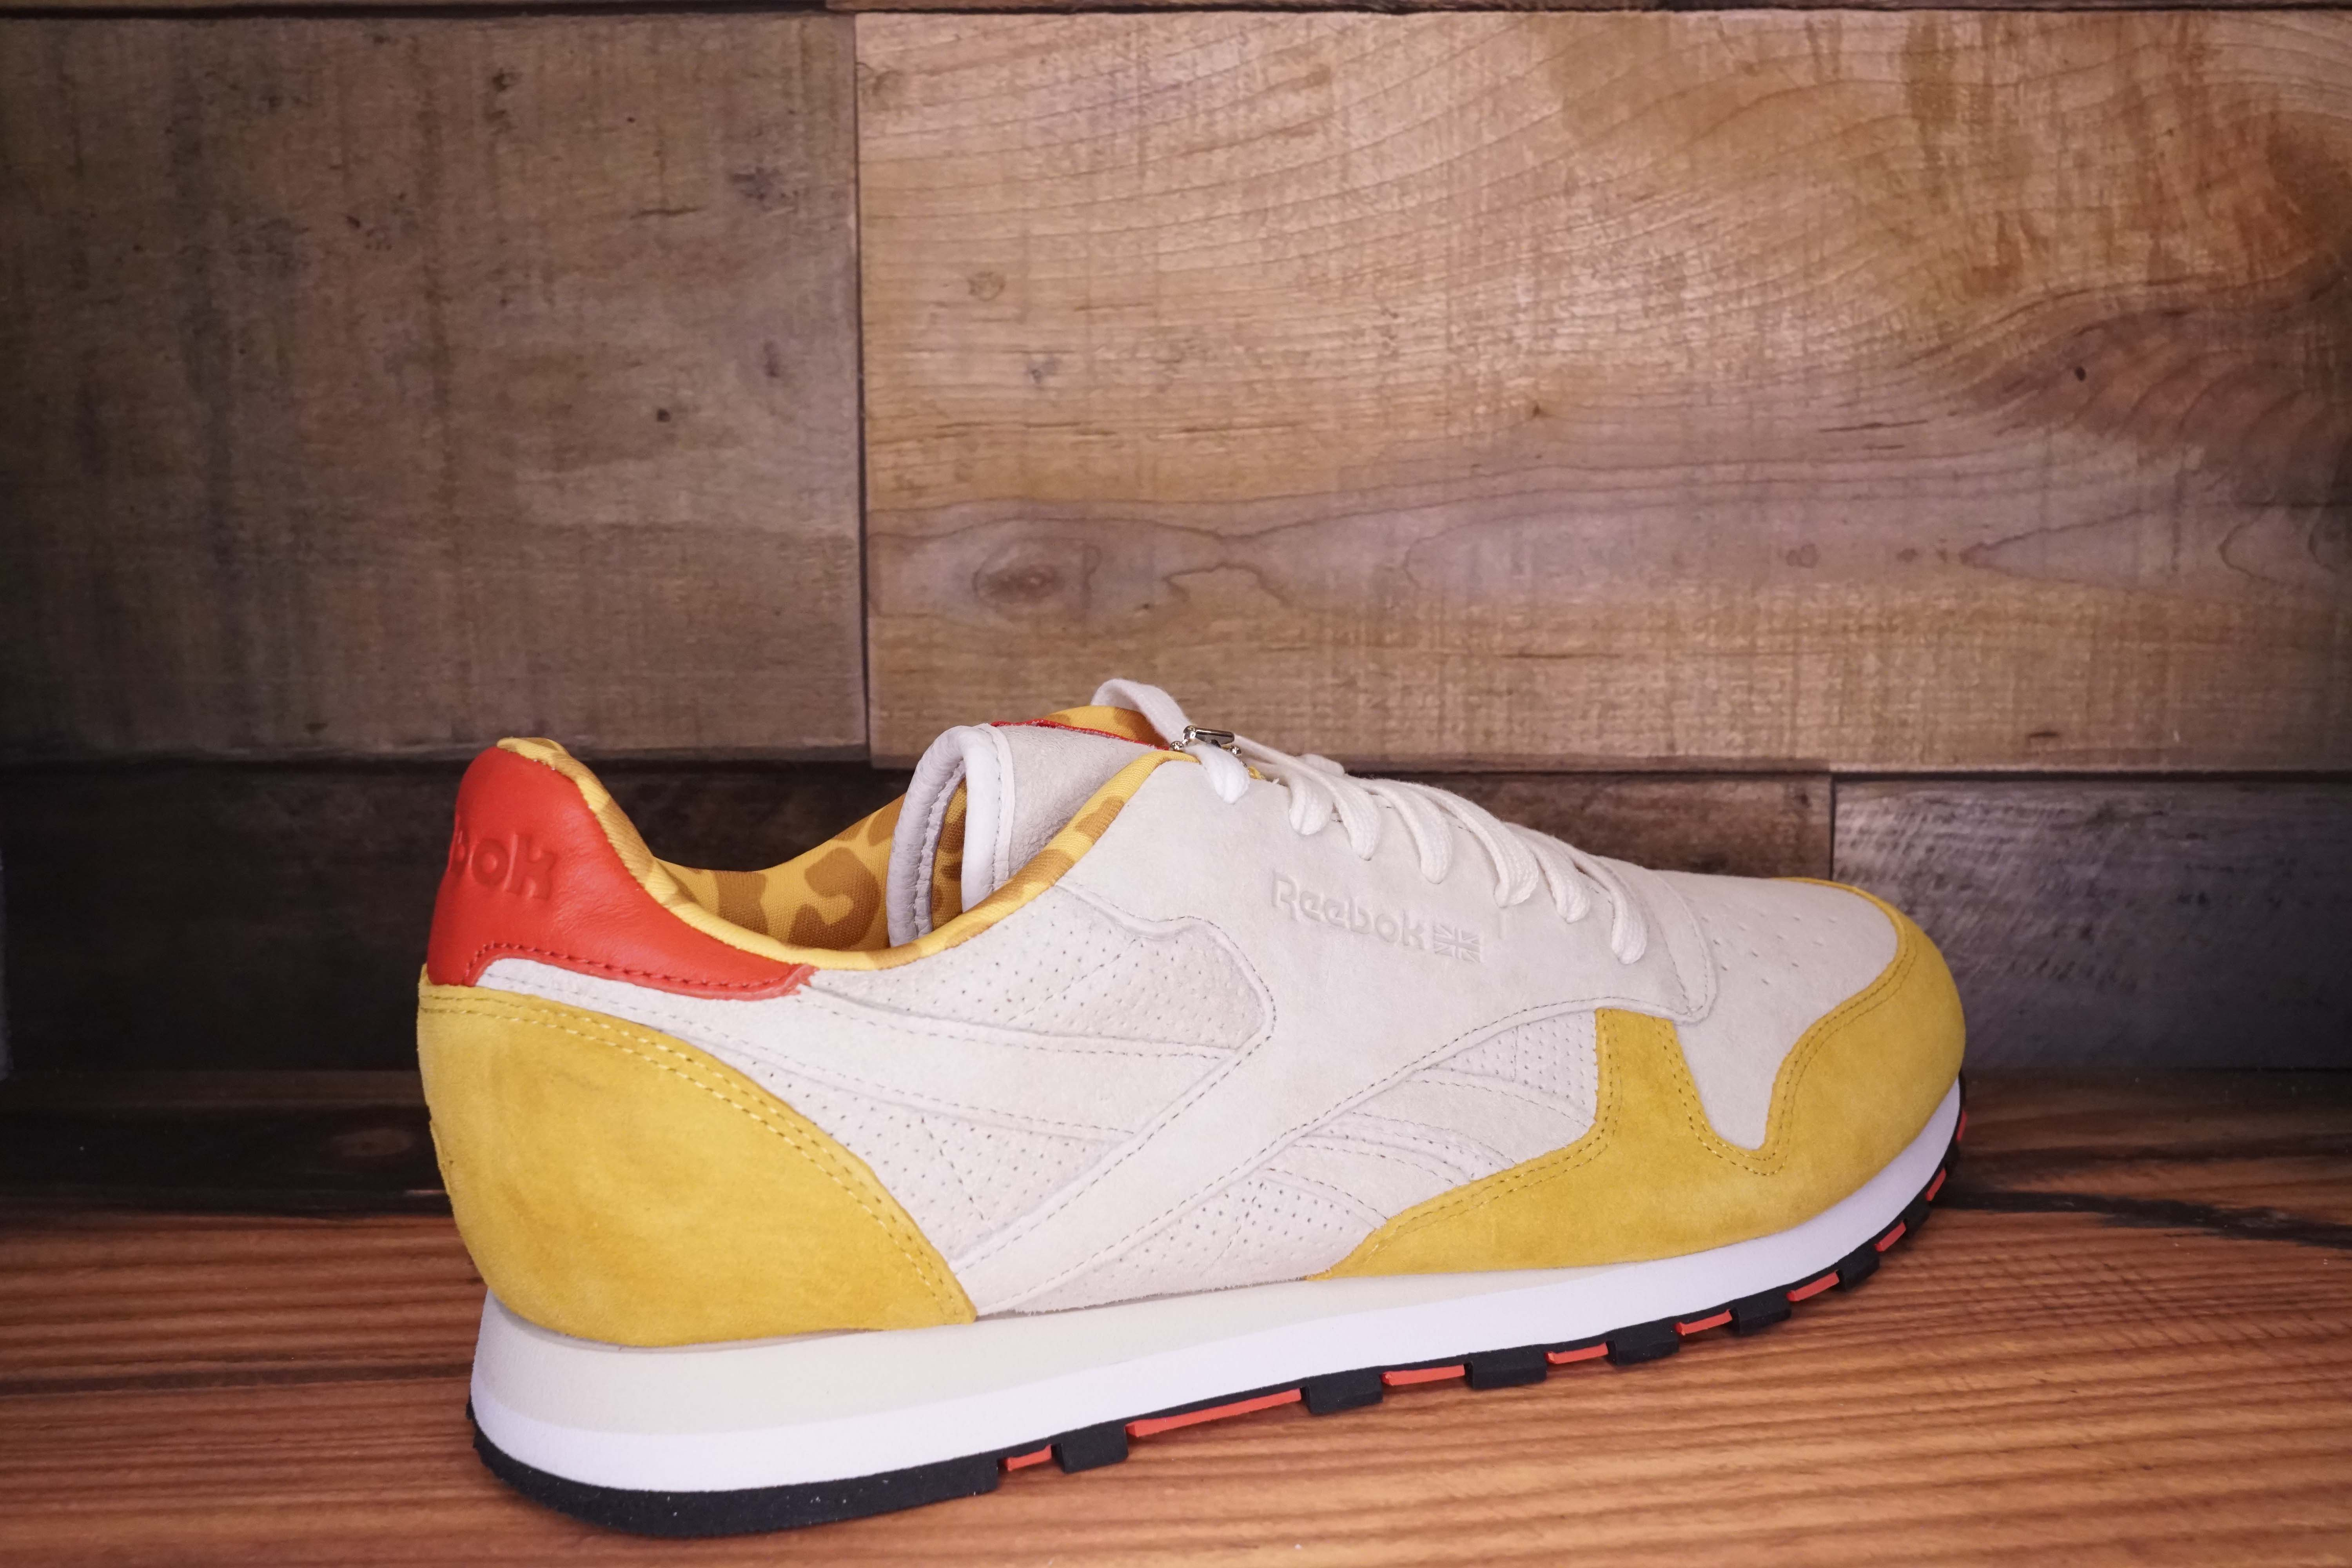 Reebok-Classic-Leather-Lux-ABERDEEN-LEOPARDS-Size-11-New-with-Original-Box_2122C.jpg